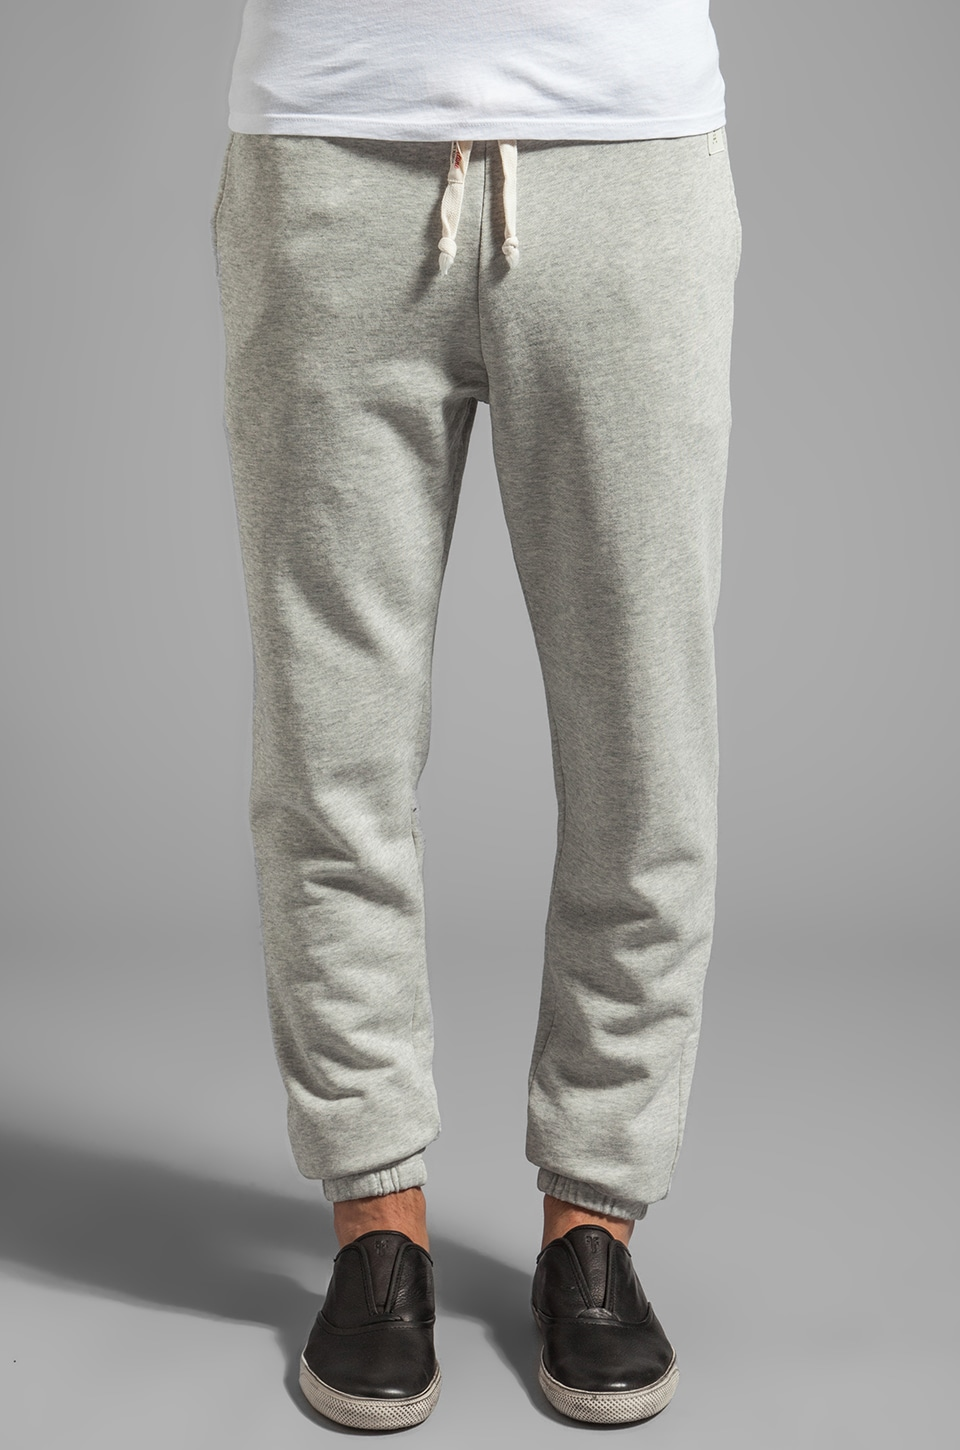 Scotch & Soda Home Alone Jogging Pant in Ecru